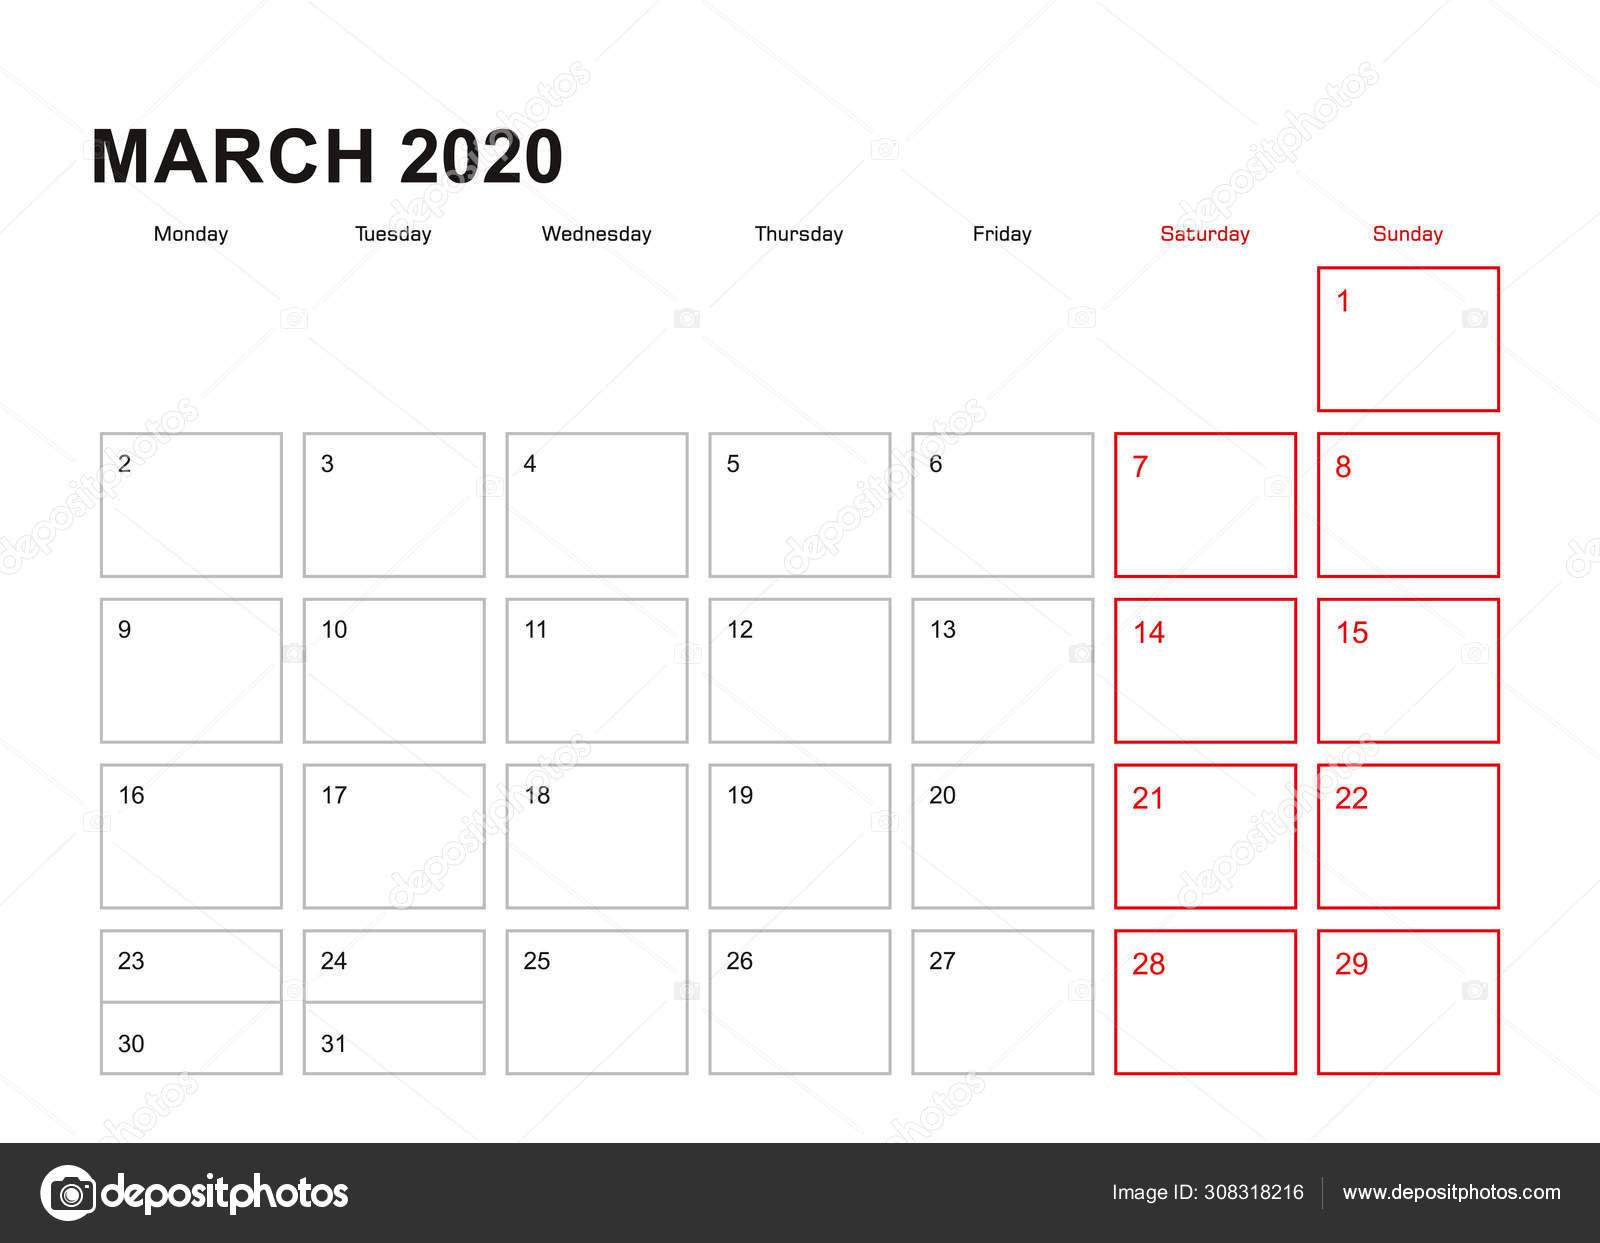 Wall Planner For March 2020 In English Language, Week